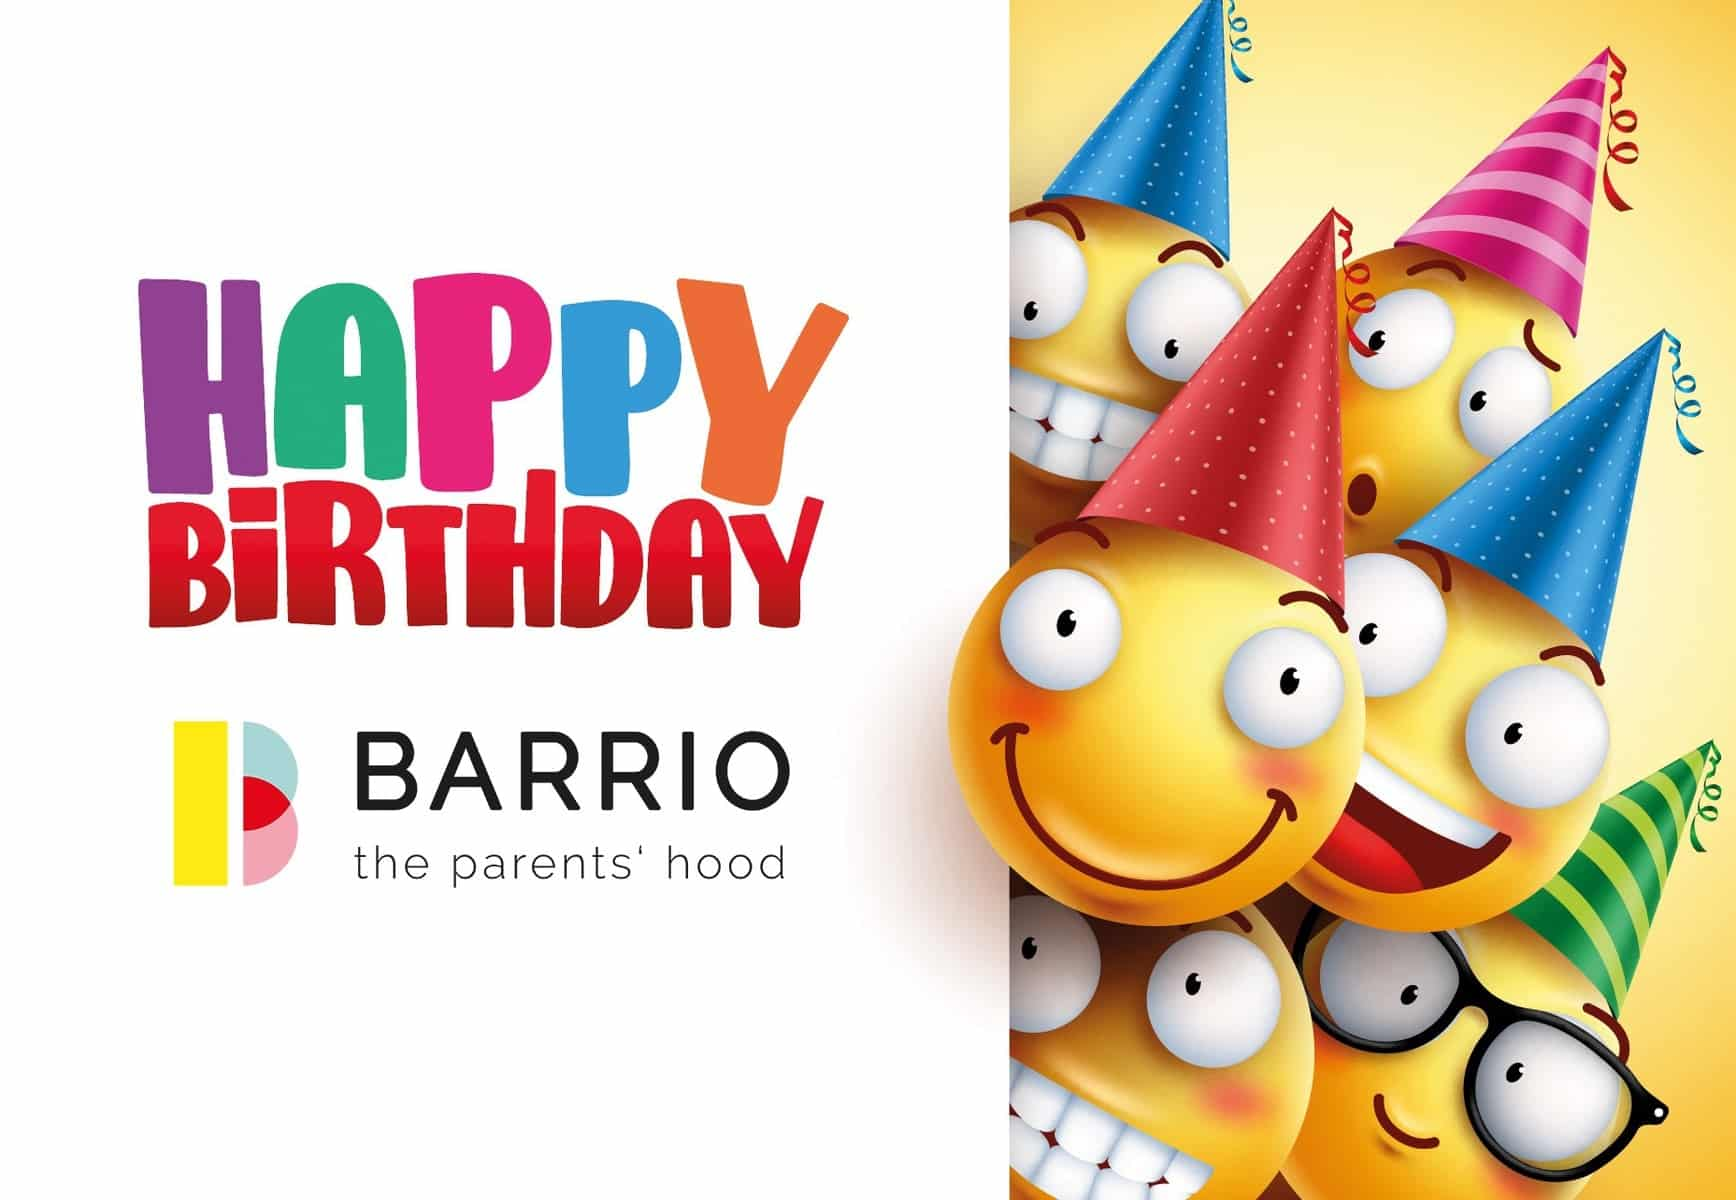 Happy Birthday BARRIO